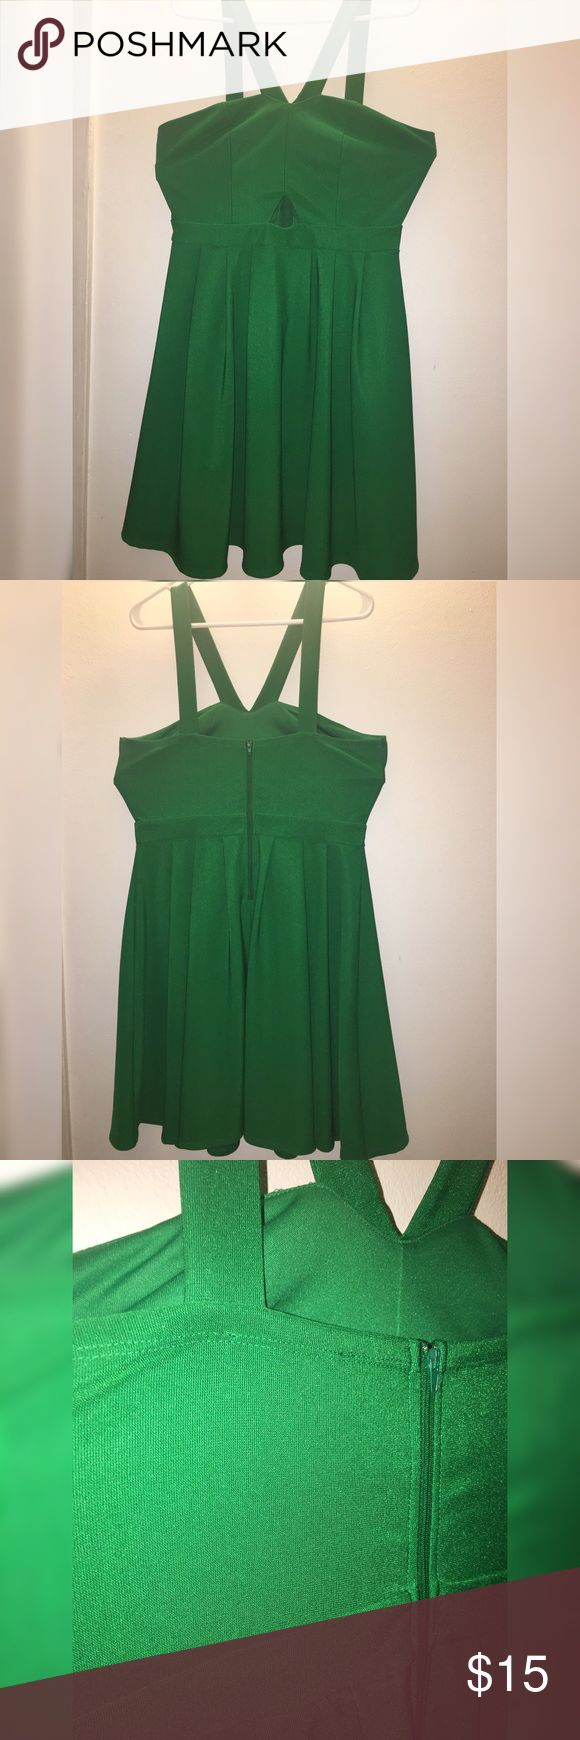 Emerald green dress Beautiful emerald green flowing dress. This dress hits just above the knee, Also has a small opening at the top stomach area to show some skin which is super cute! Great quality material, not brand new but is in excellent condition. This dress is perfect for a girls night out or events! Forever 21 Dresses